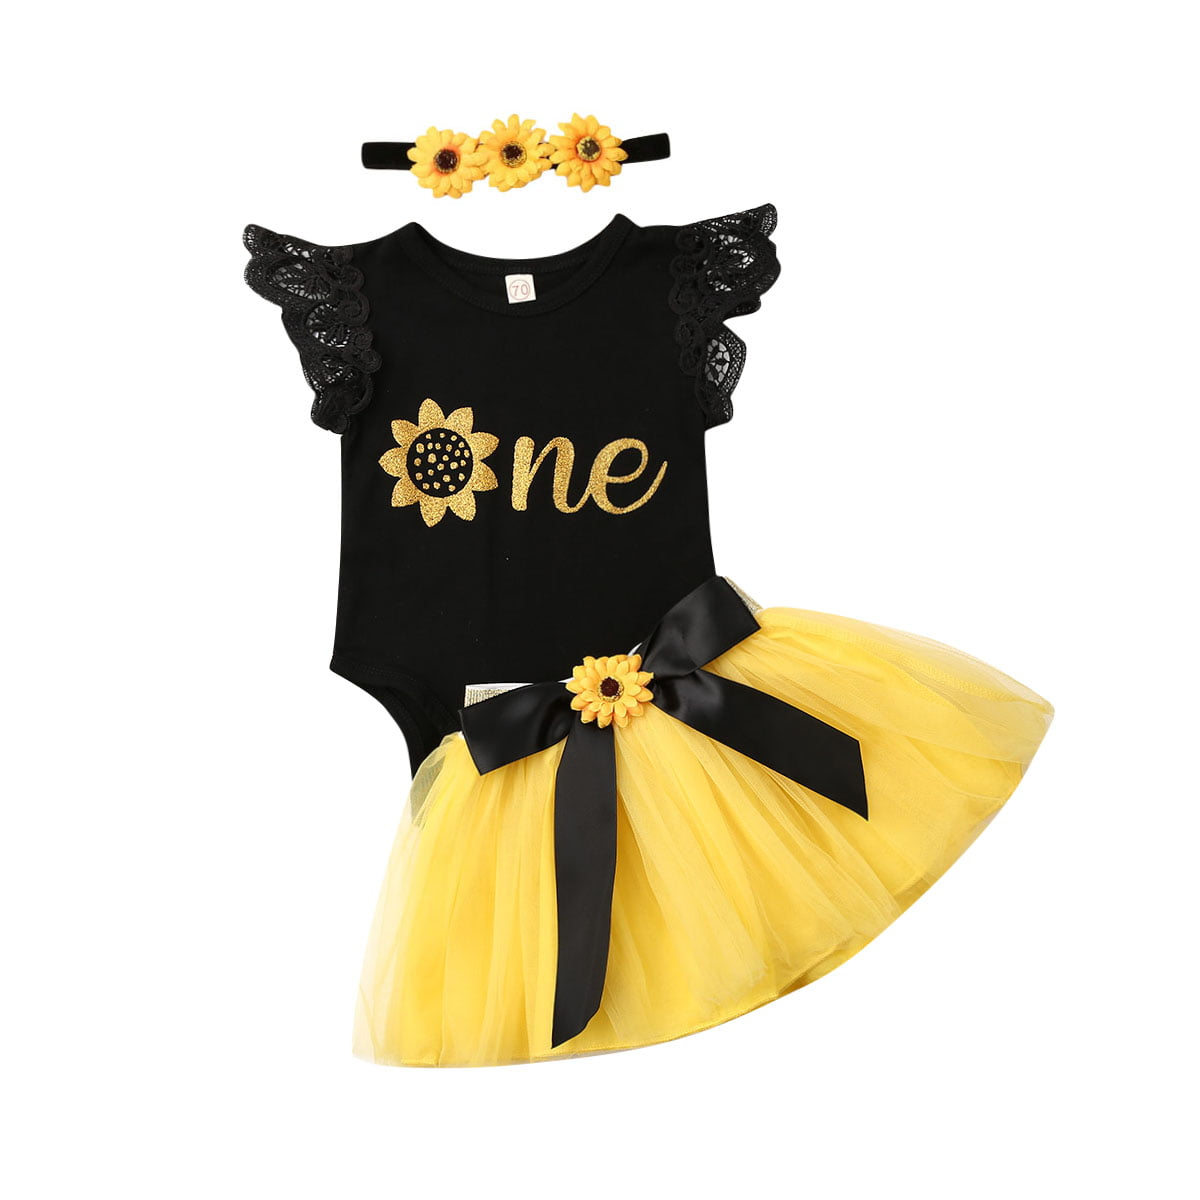 Frecoccialo Baby Girls 1st Birthday Outfits Clothes Set One Years Old Party Gifts Walmart Com Walmart Com